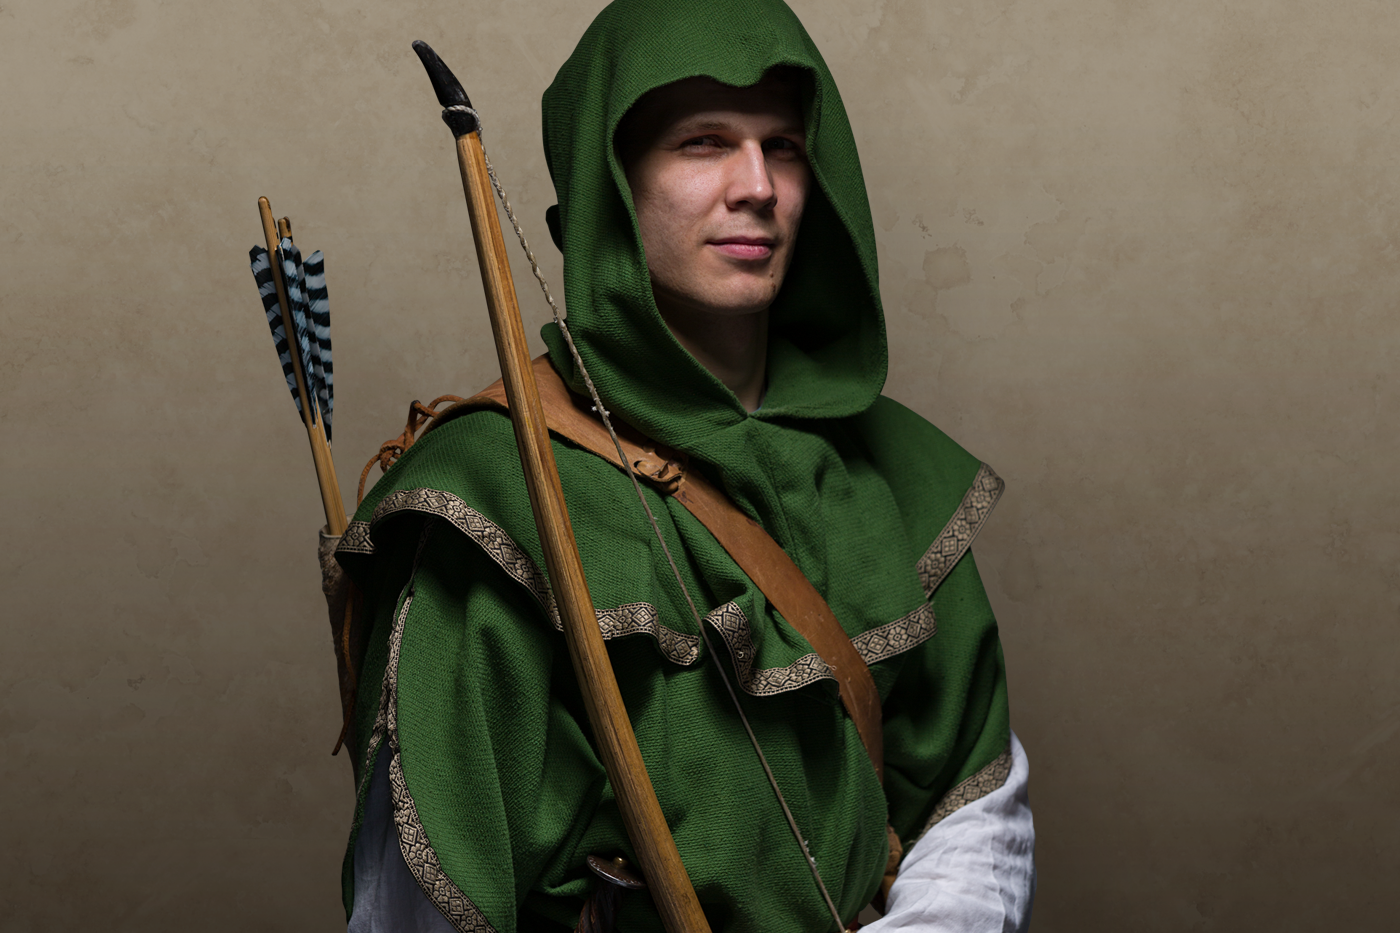 A man in a green medieval hood with a long bow and arrows